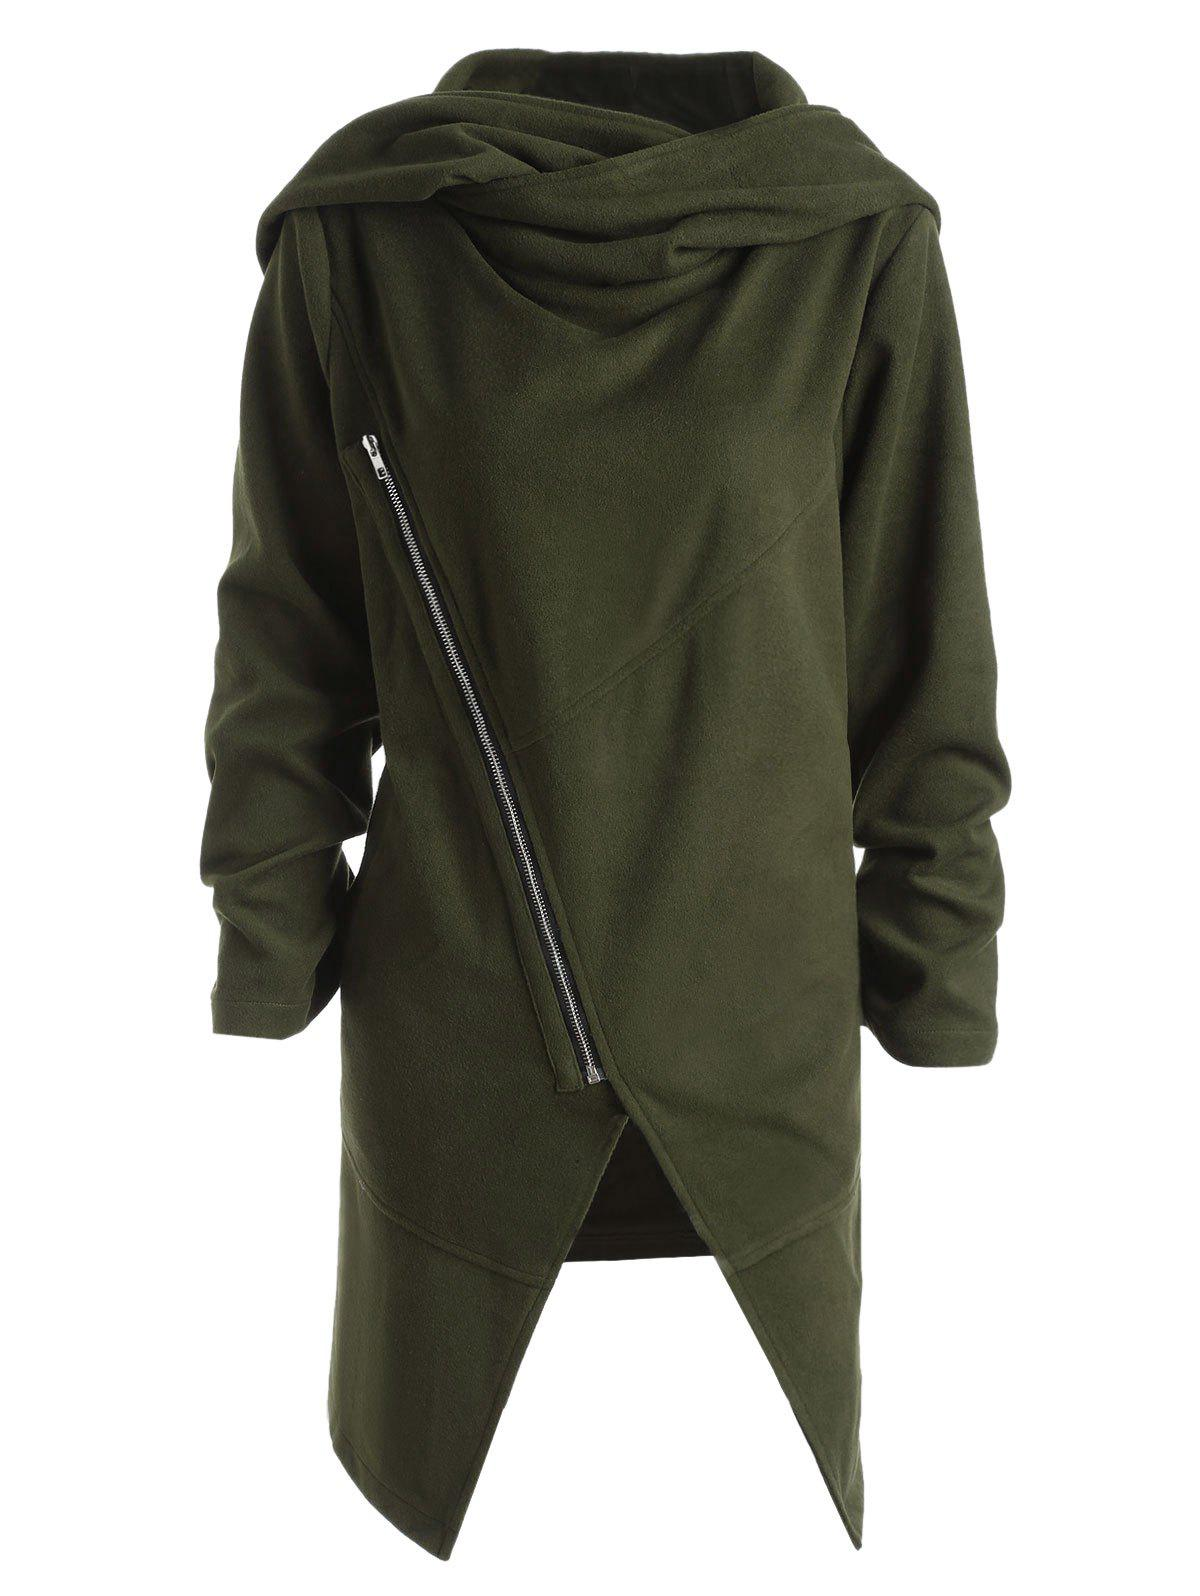 Plus Size Wool Blend Hooded Front Slit CoatWOMEN<br><br>Size: 2XL; Color: ARMY GREEN; Clothes Type: Wool &amp; Blends; Material: Cotton,Polyester,Wool; Type: Asymmetric Length; Shirt Length: Long; Sleeve Length: Full; Collar: Hooded; Pattern Type: Solid; Embellishment: Zippers; Style: Fashion; Season: Fall; With Belt: No; Weight: 0.9000kg; Package Contents: 1 x Coat;